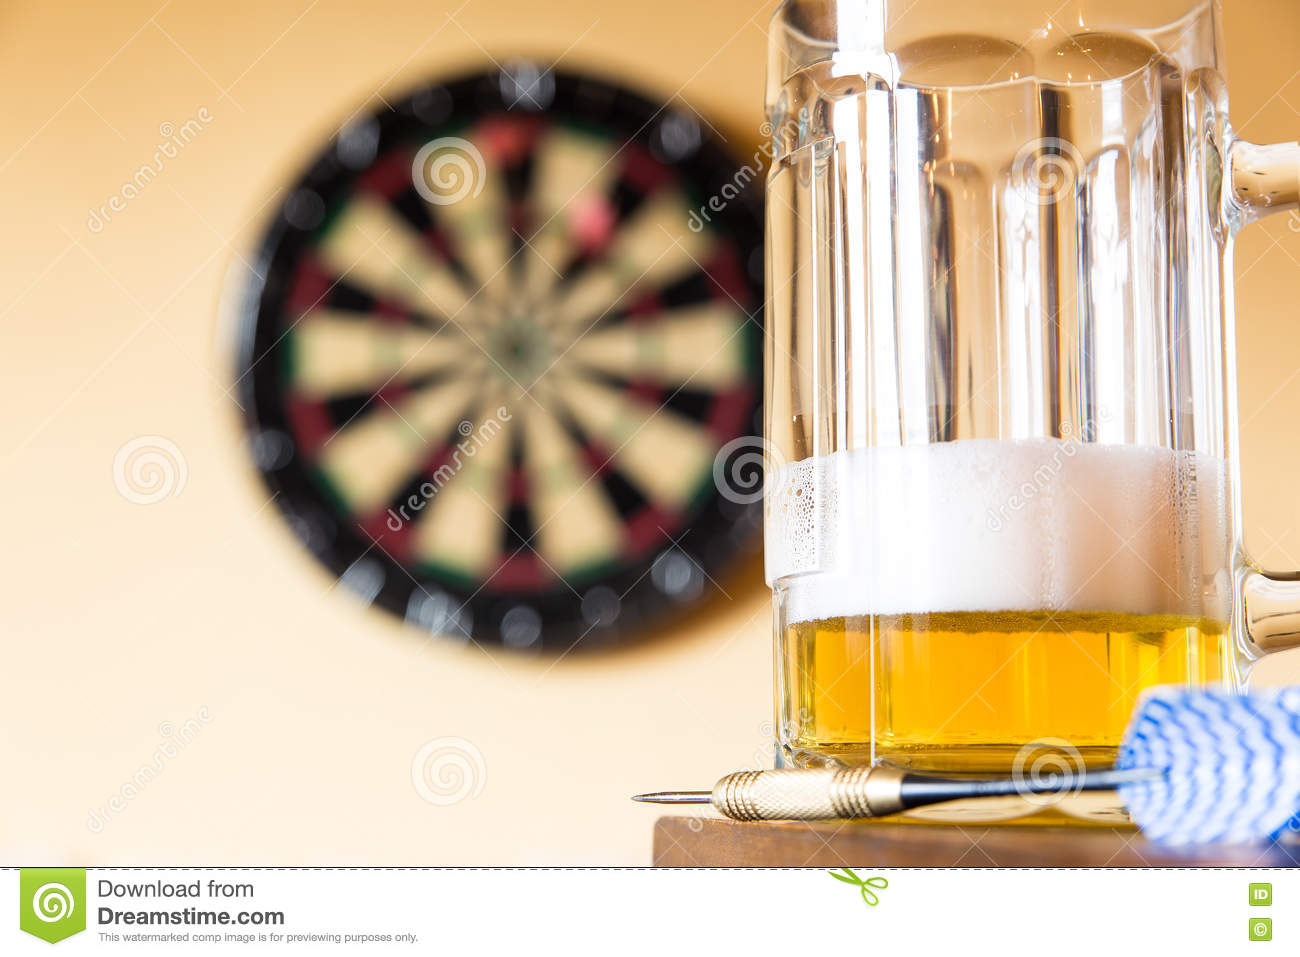 Glass of beer and dartboard